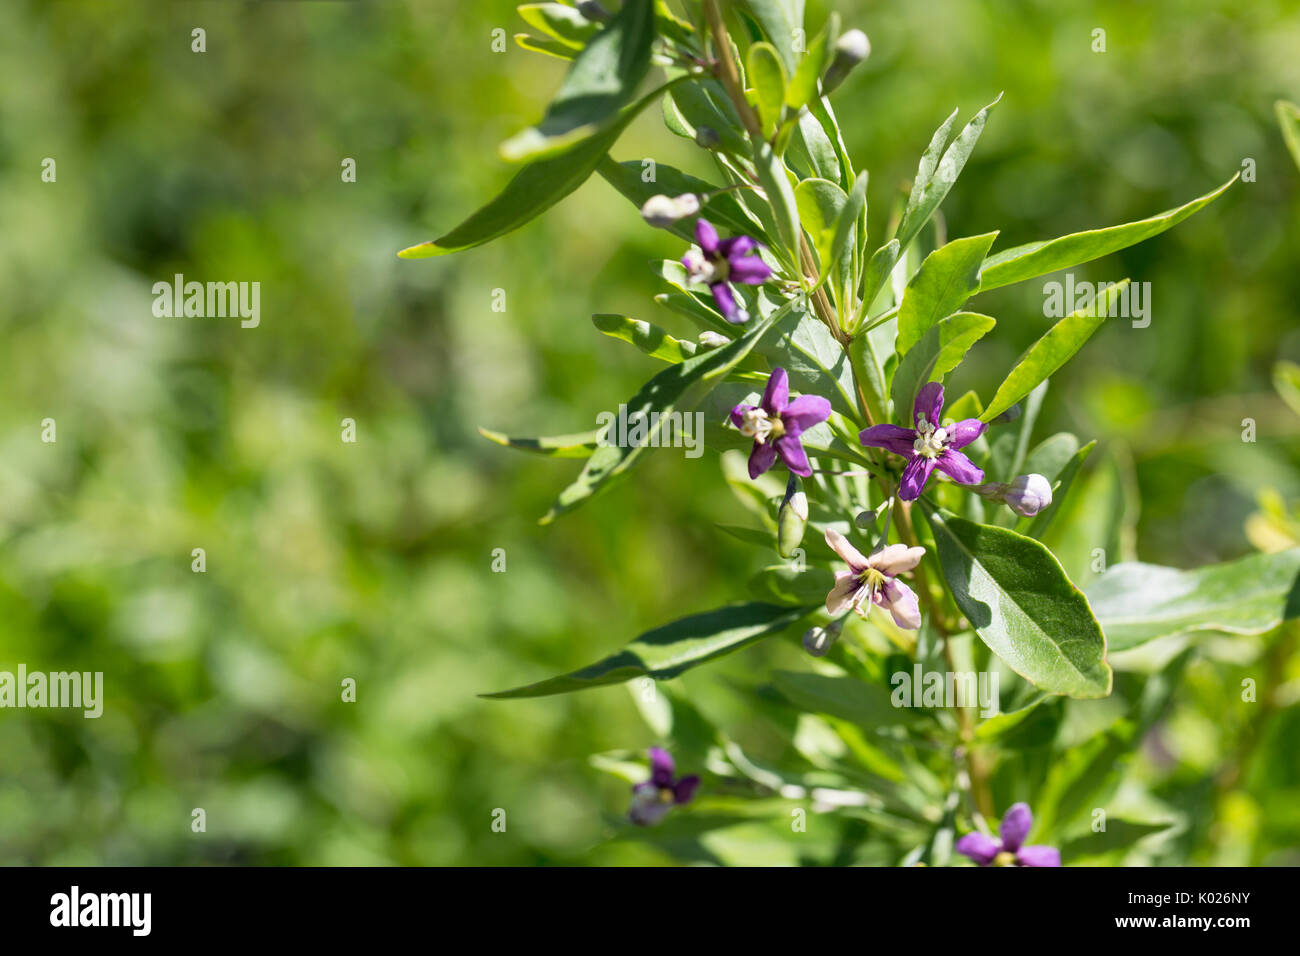 Flowering Goji Berry Plant Stock Photo Alamy